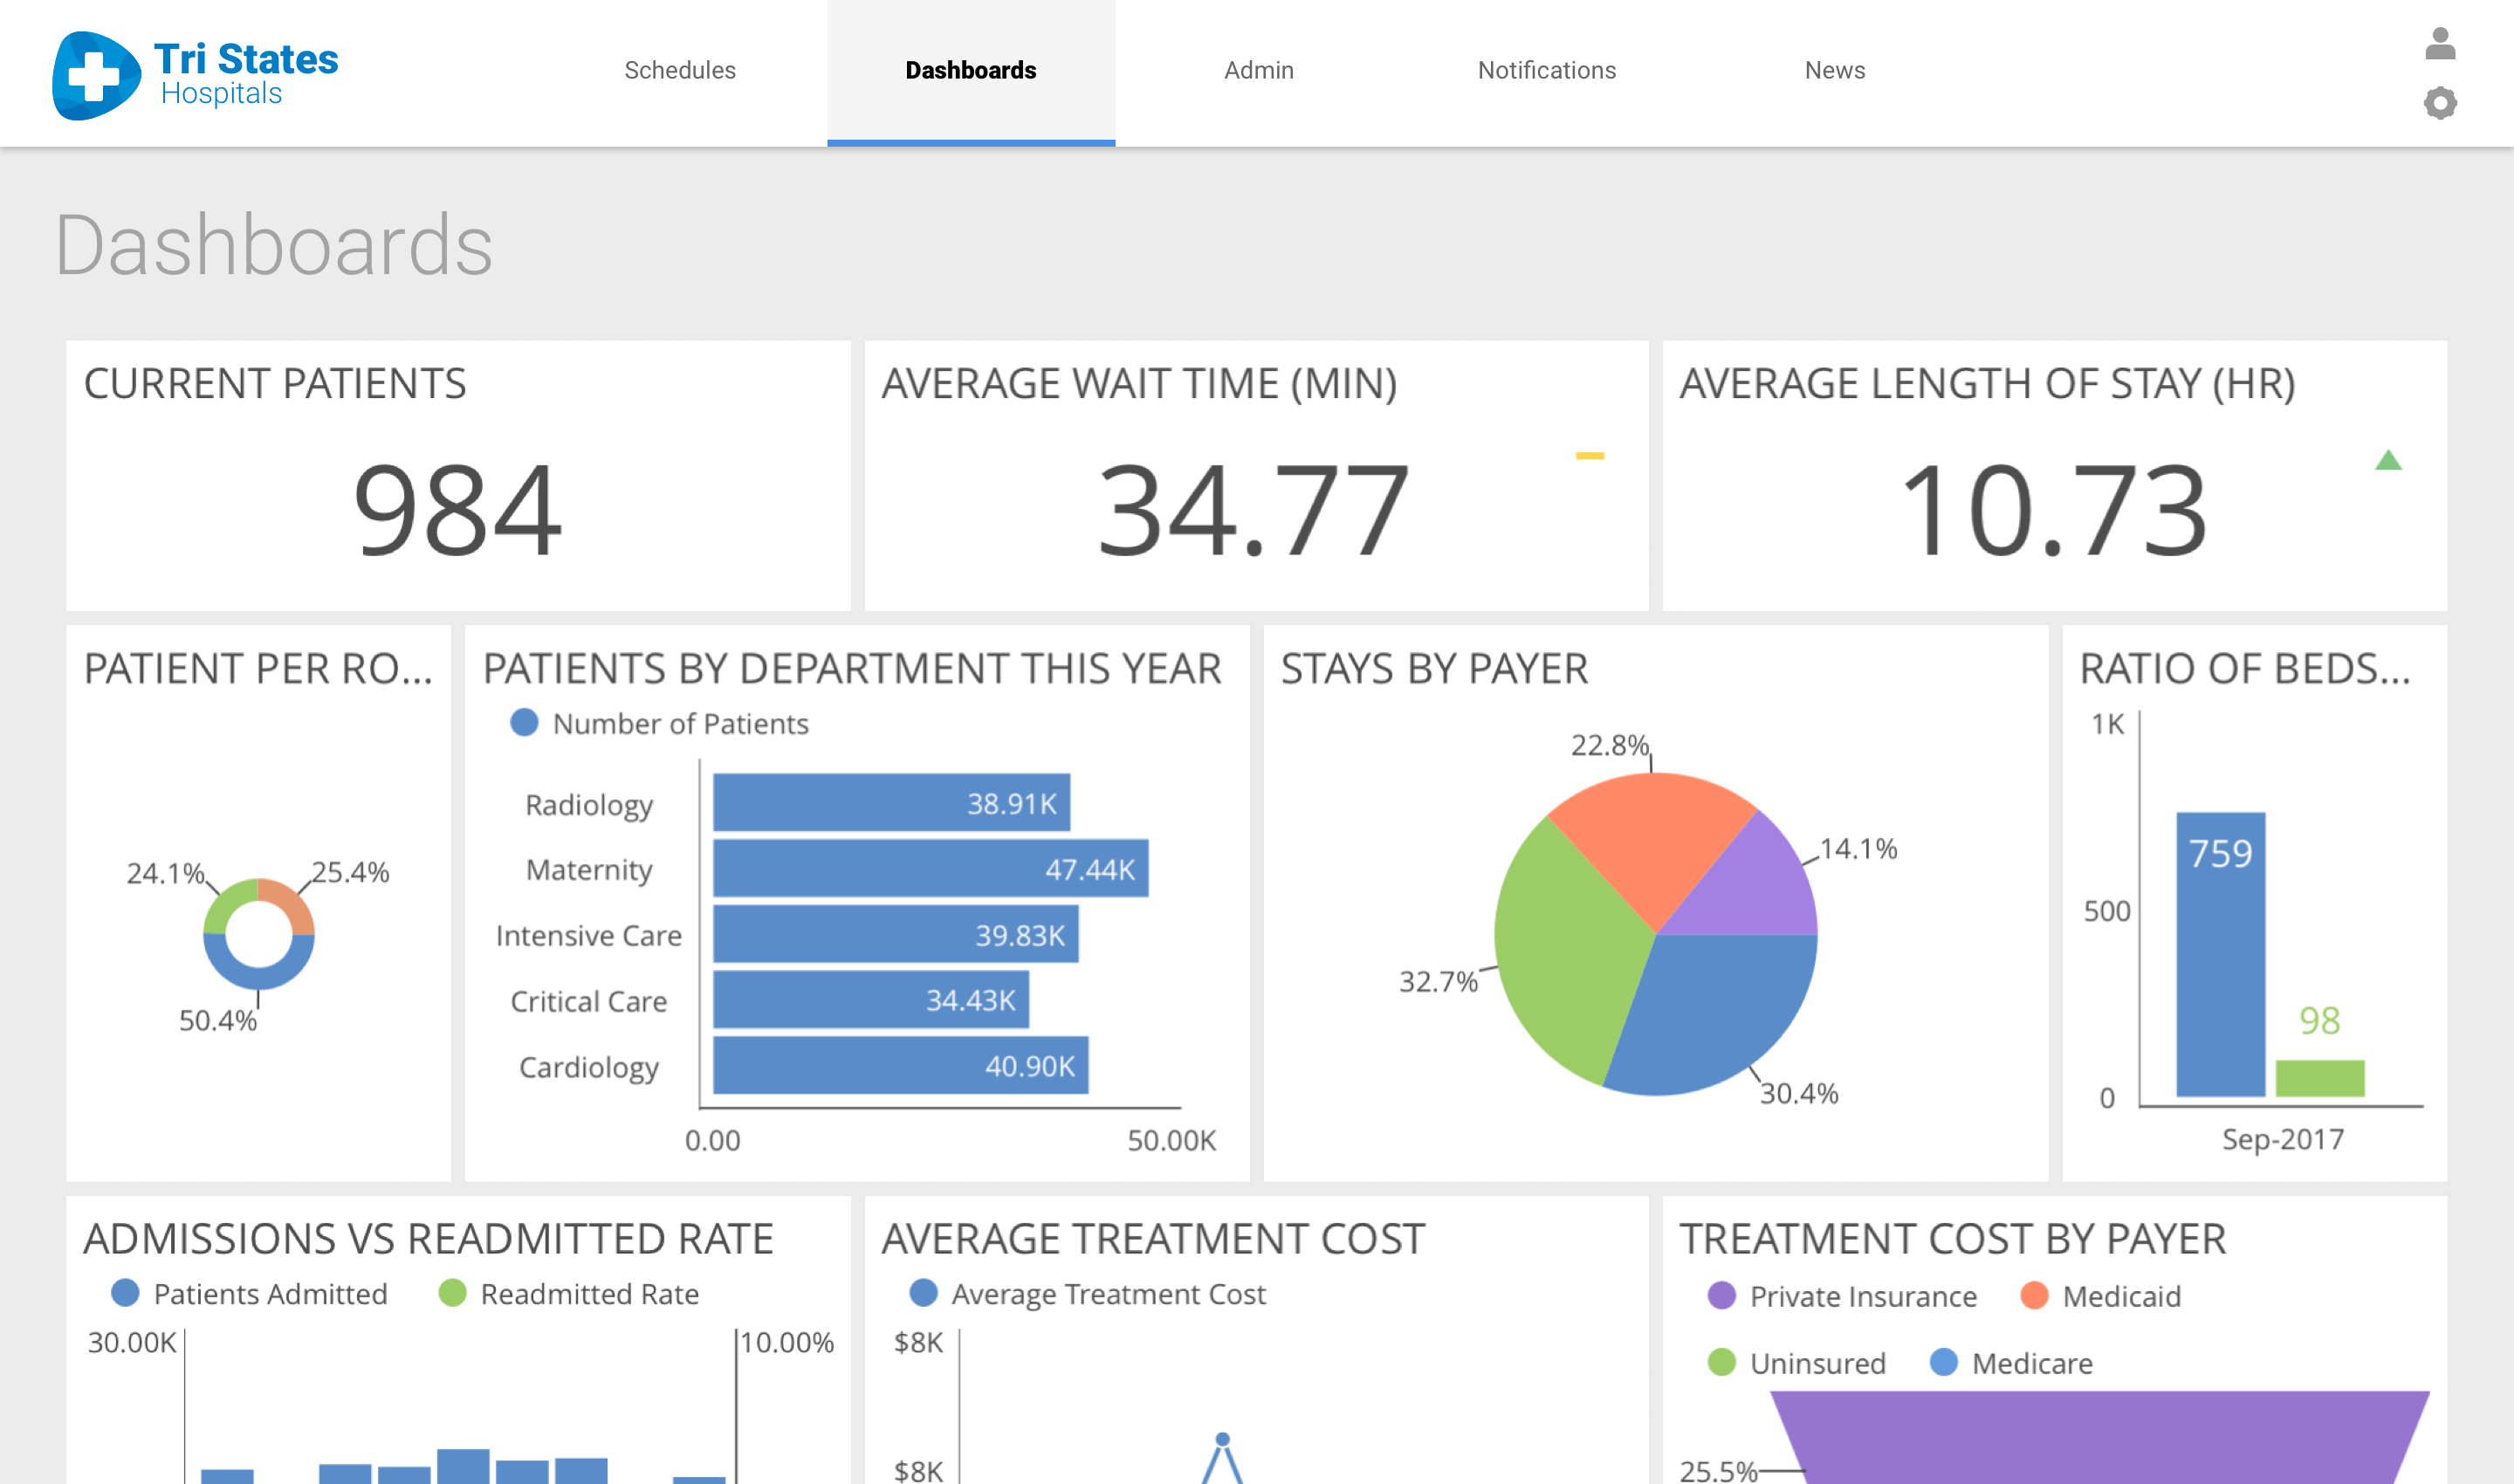 Hospital dashboards